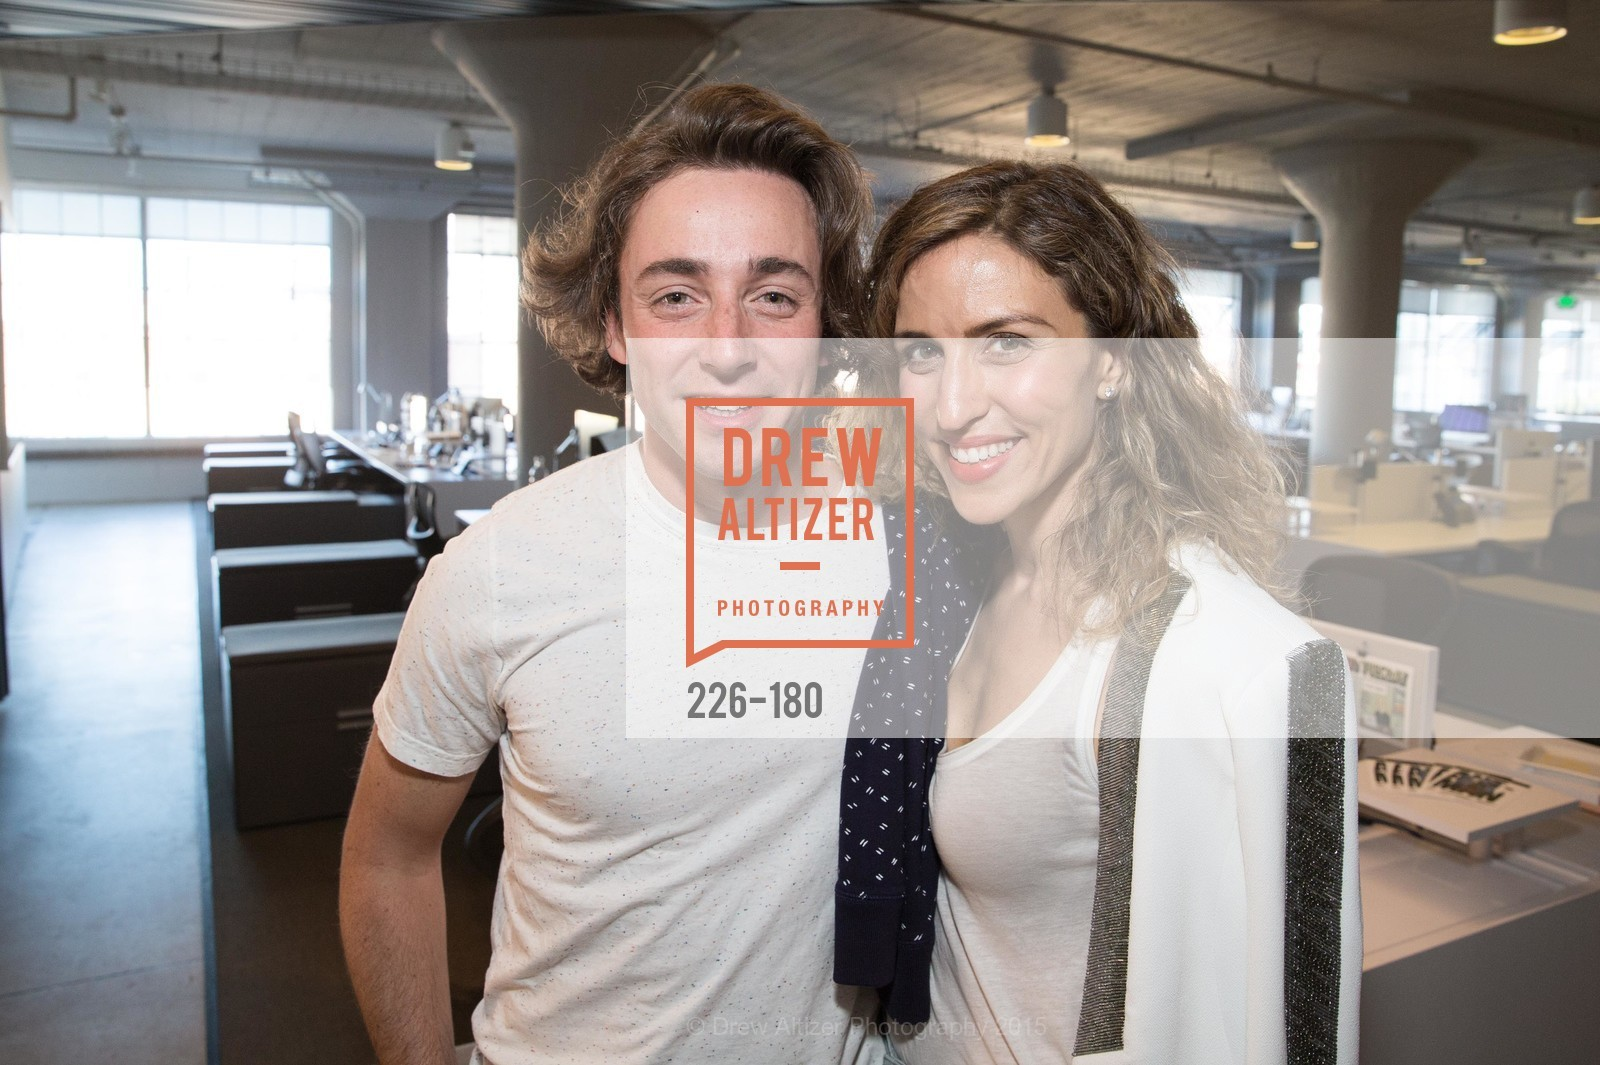 Corey Perkins, Amy Dadich, Wired Magazine July Cover Release Celebration at New Wired Office, Wired Magazine Offices. 520 3rd Street, June 24th, 2015,Drew Altizer, Drew Altizer Photography, full-service agency, private events, San Francisco photographer, photographer california